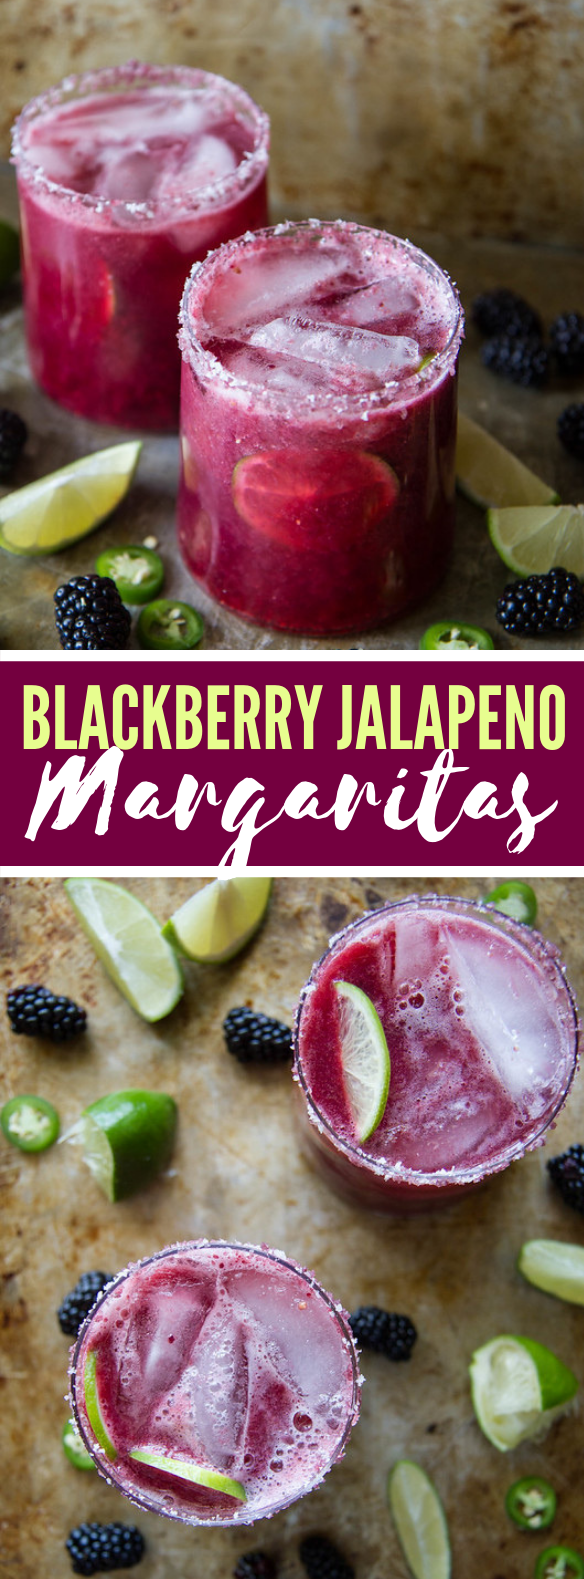 Blackberry Jalapeno Margaritas #drinks #cocktails